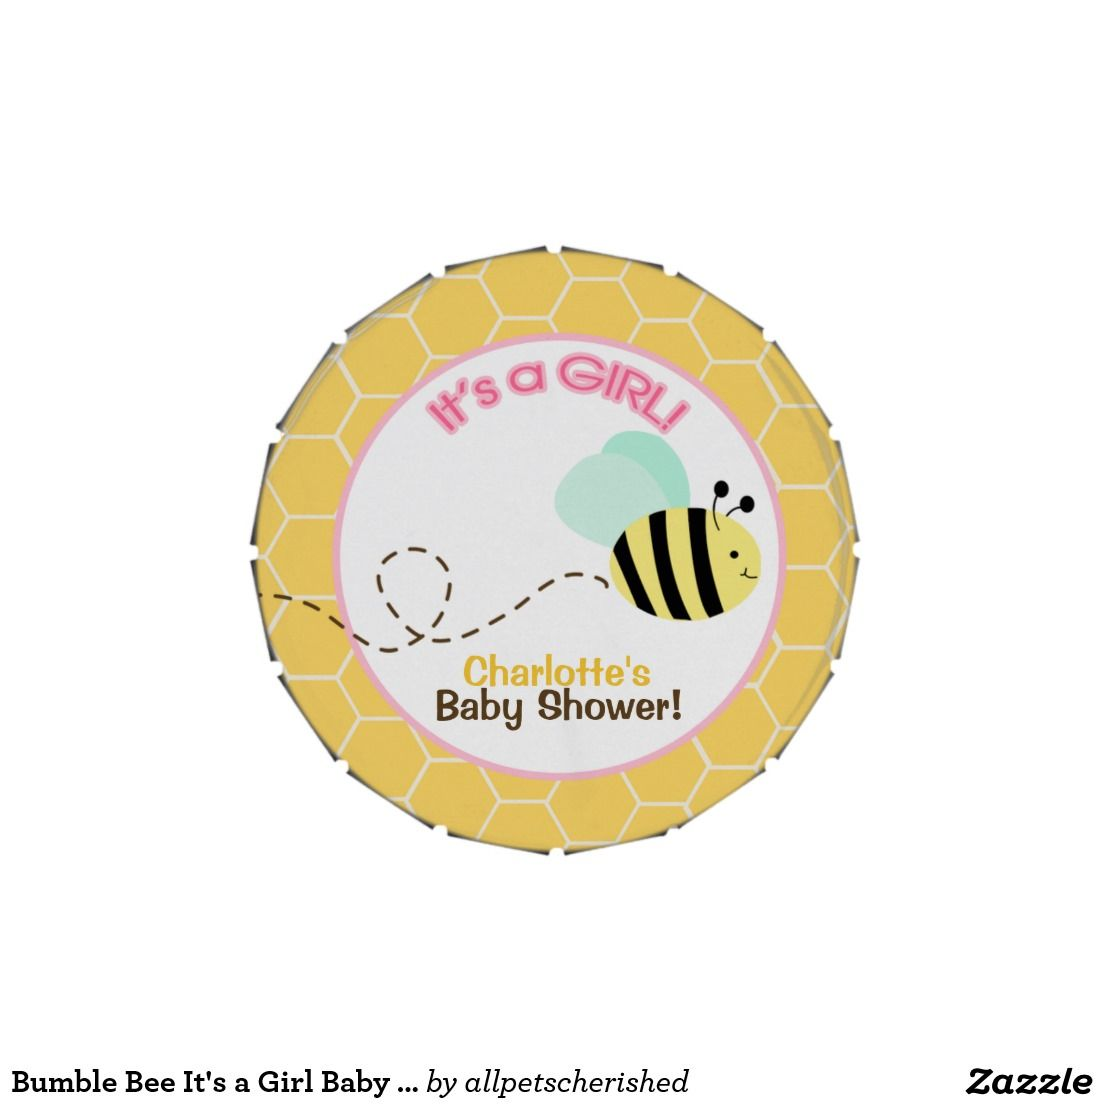 Bumble Bee It's a Girl Baby Shower Favor Tin Candy Tins